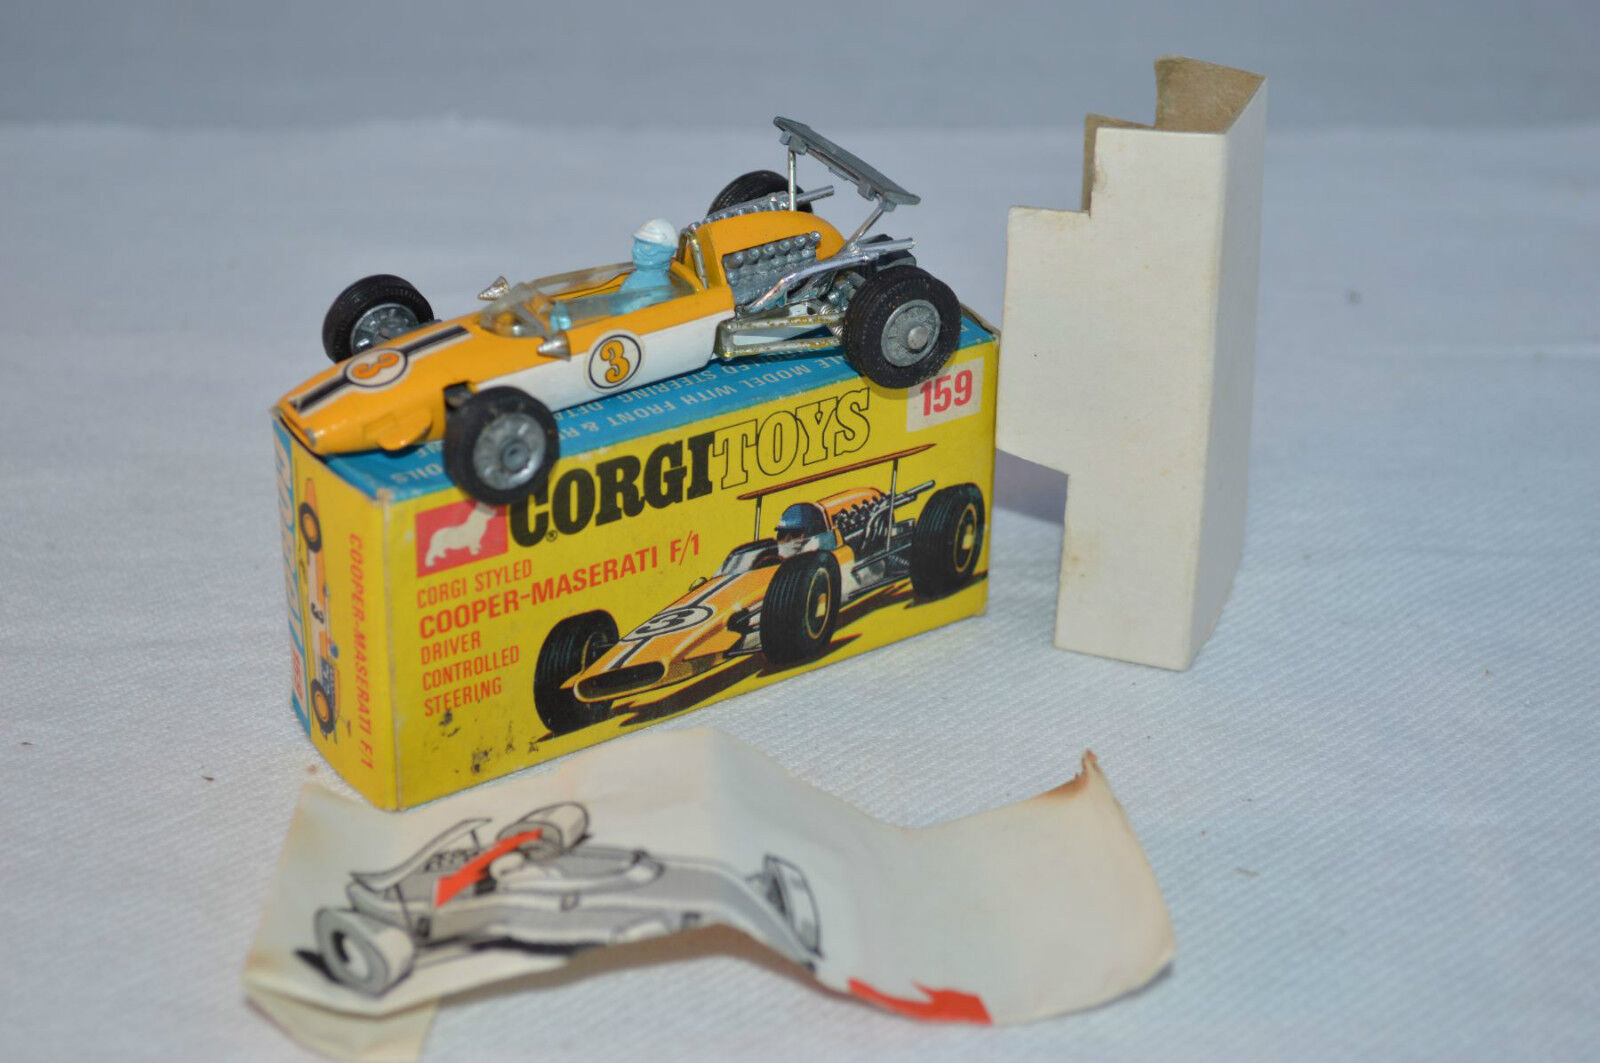 Corgi Toys 159 Cooper Maserati F 1 very very near mint in complete box a beauty